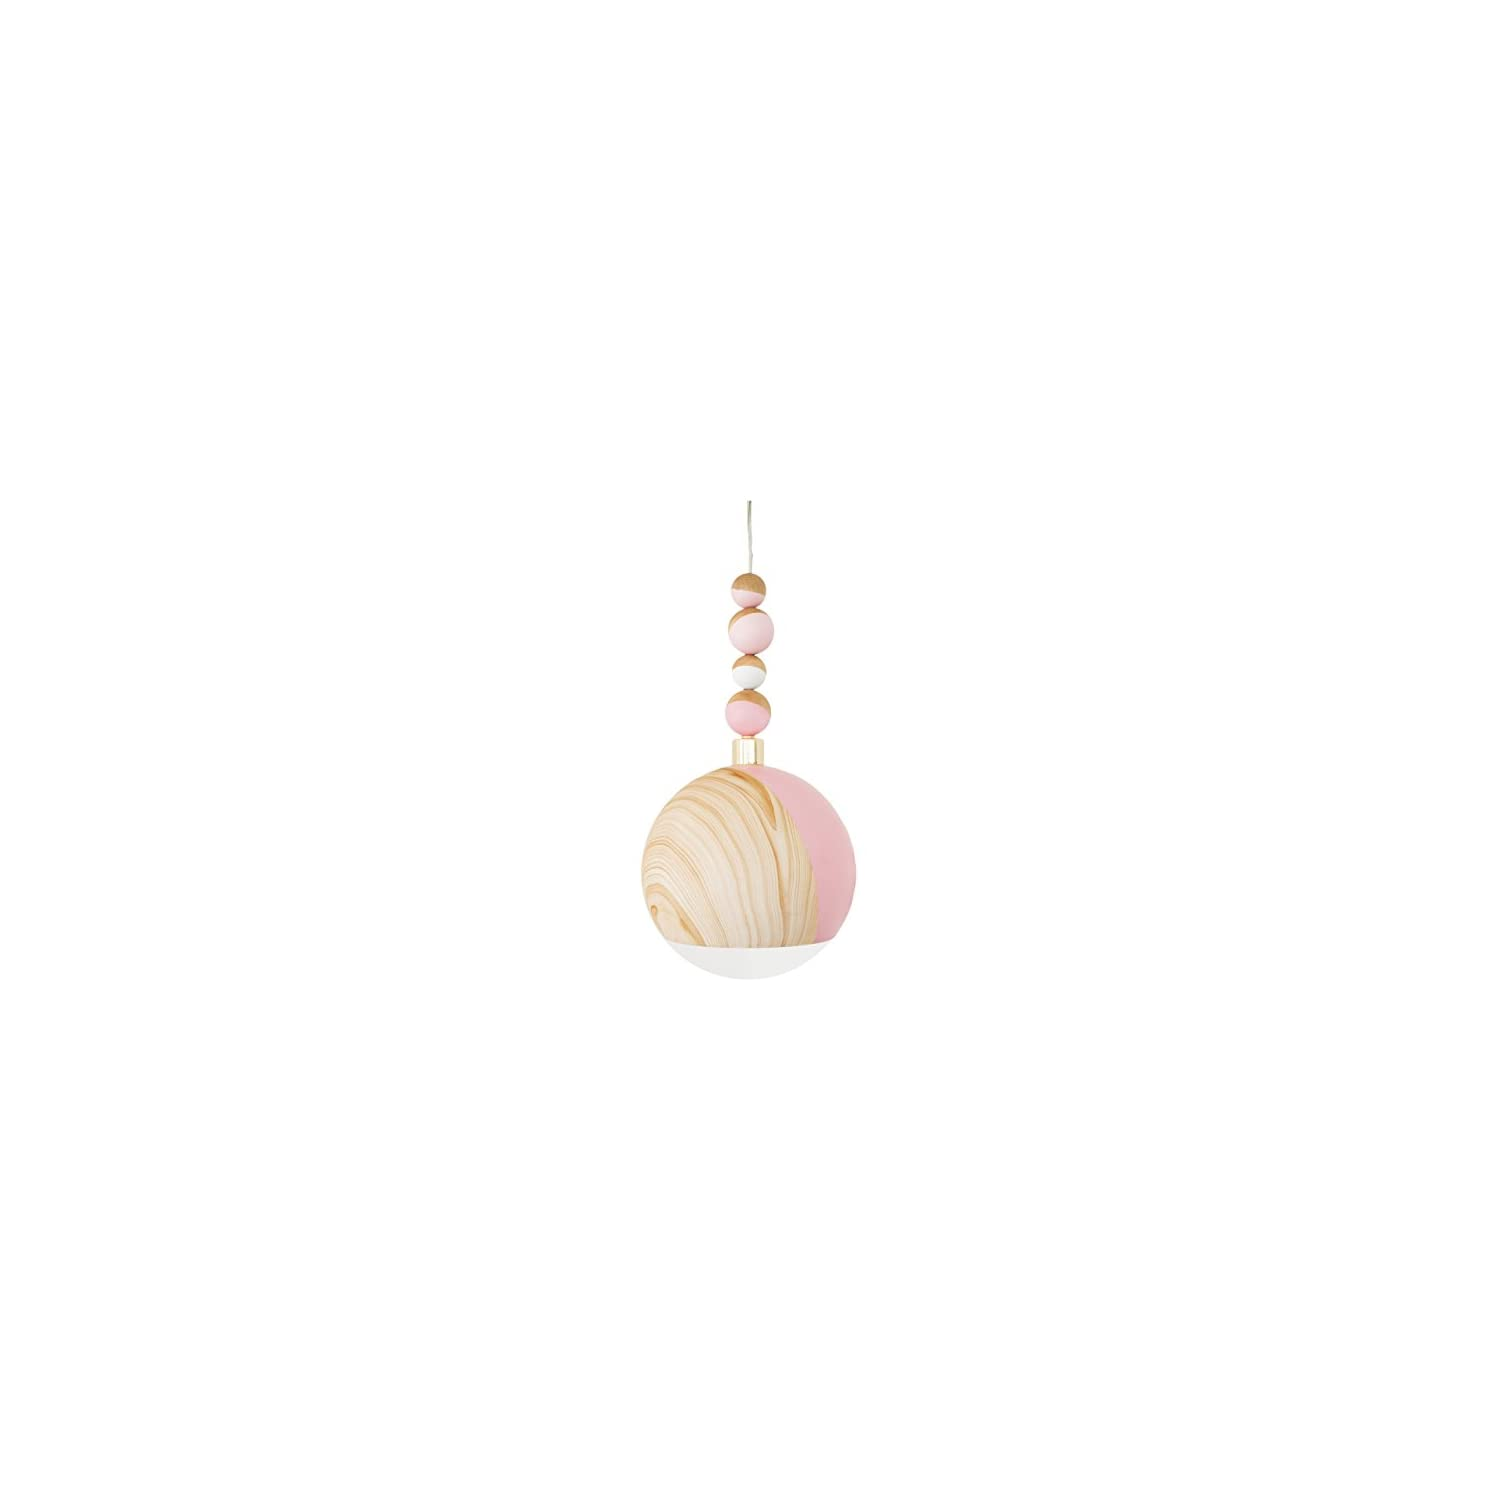 Petunia Pickle Bottom Dreaming in Dax Hanging Ceiling Pendant Light